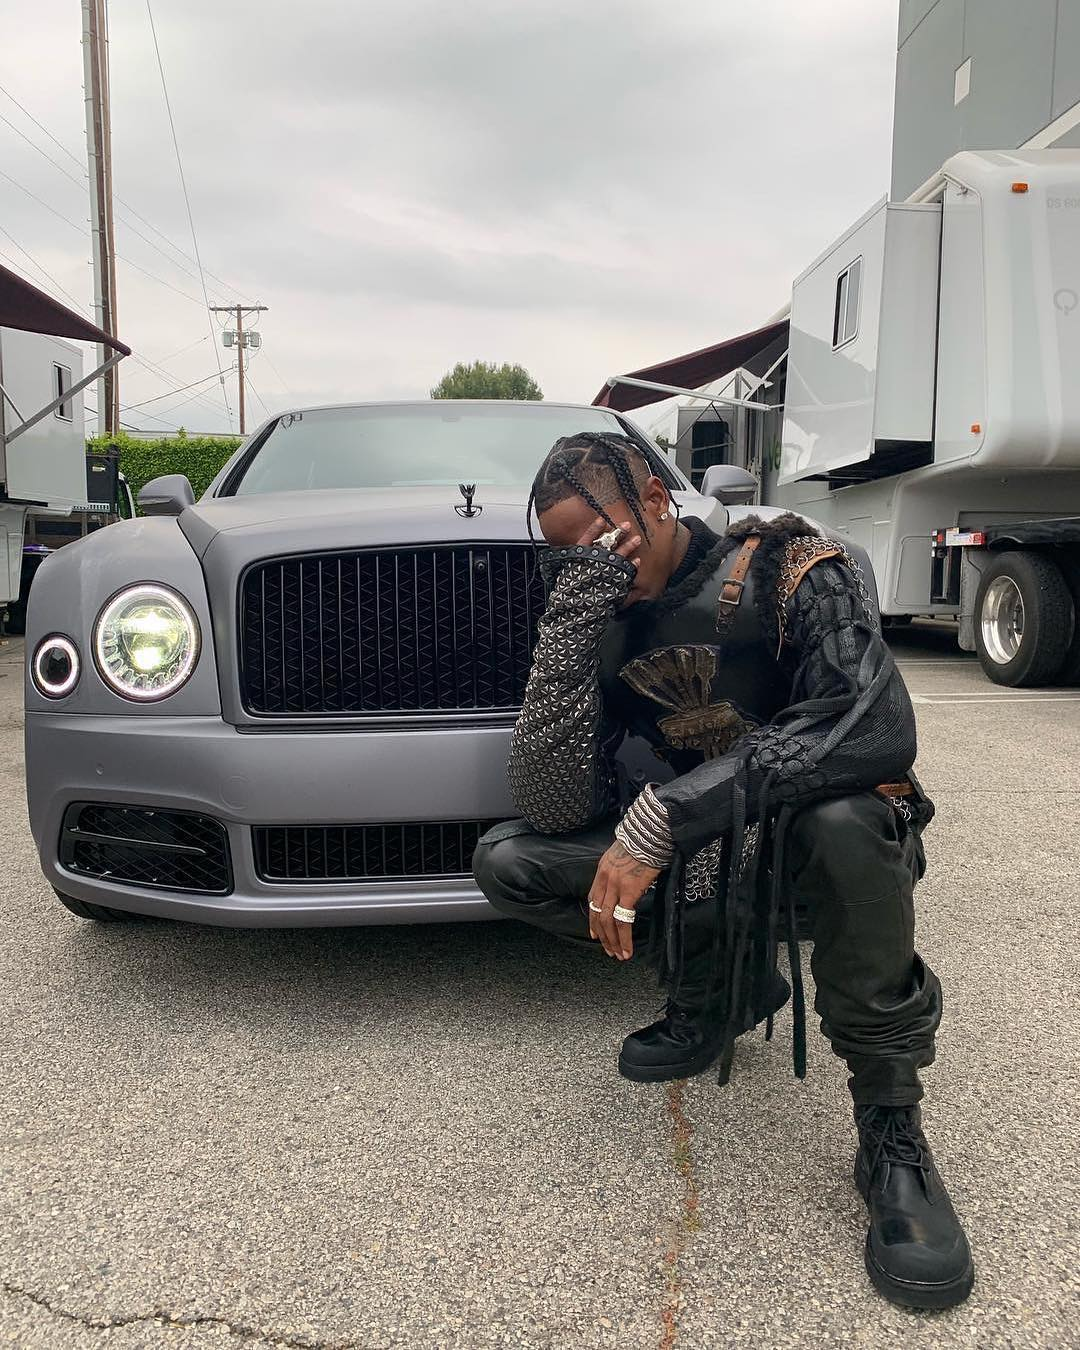 Travis Scott Goes Game Of Thrones in his Recent Instagram Photo Op